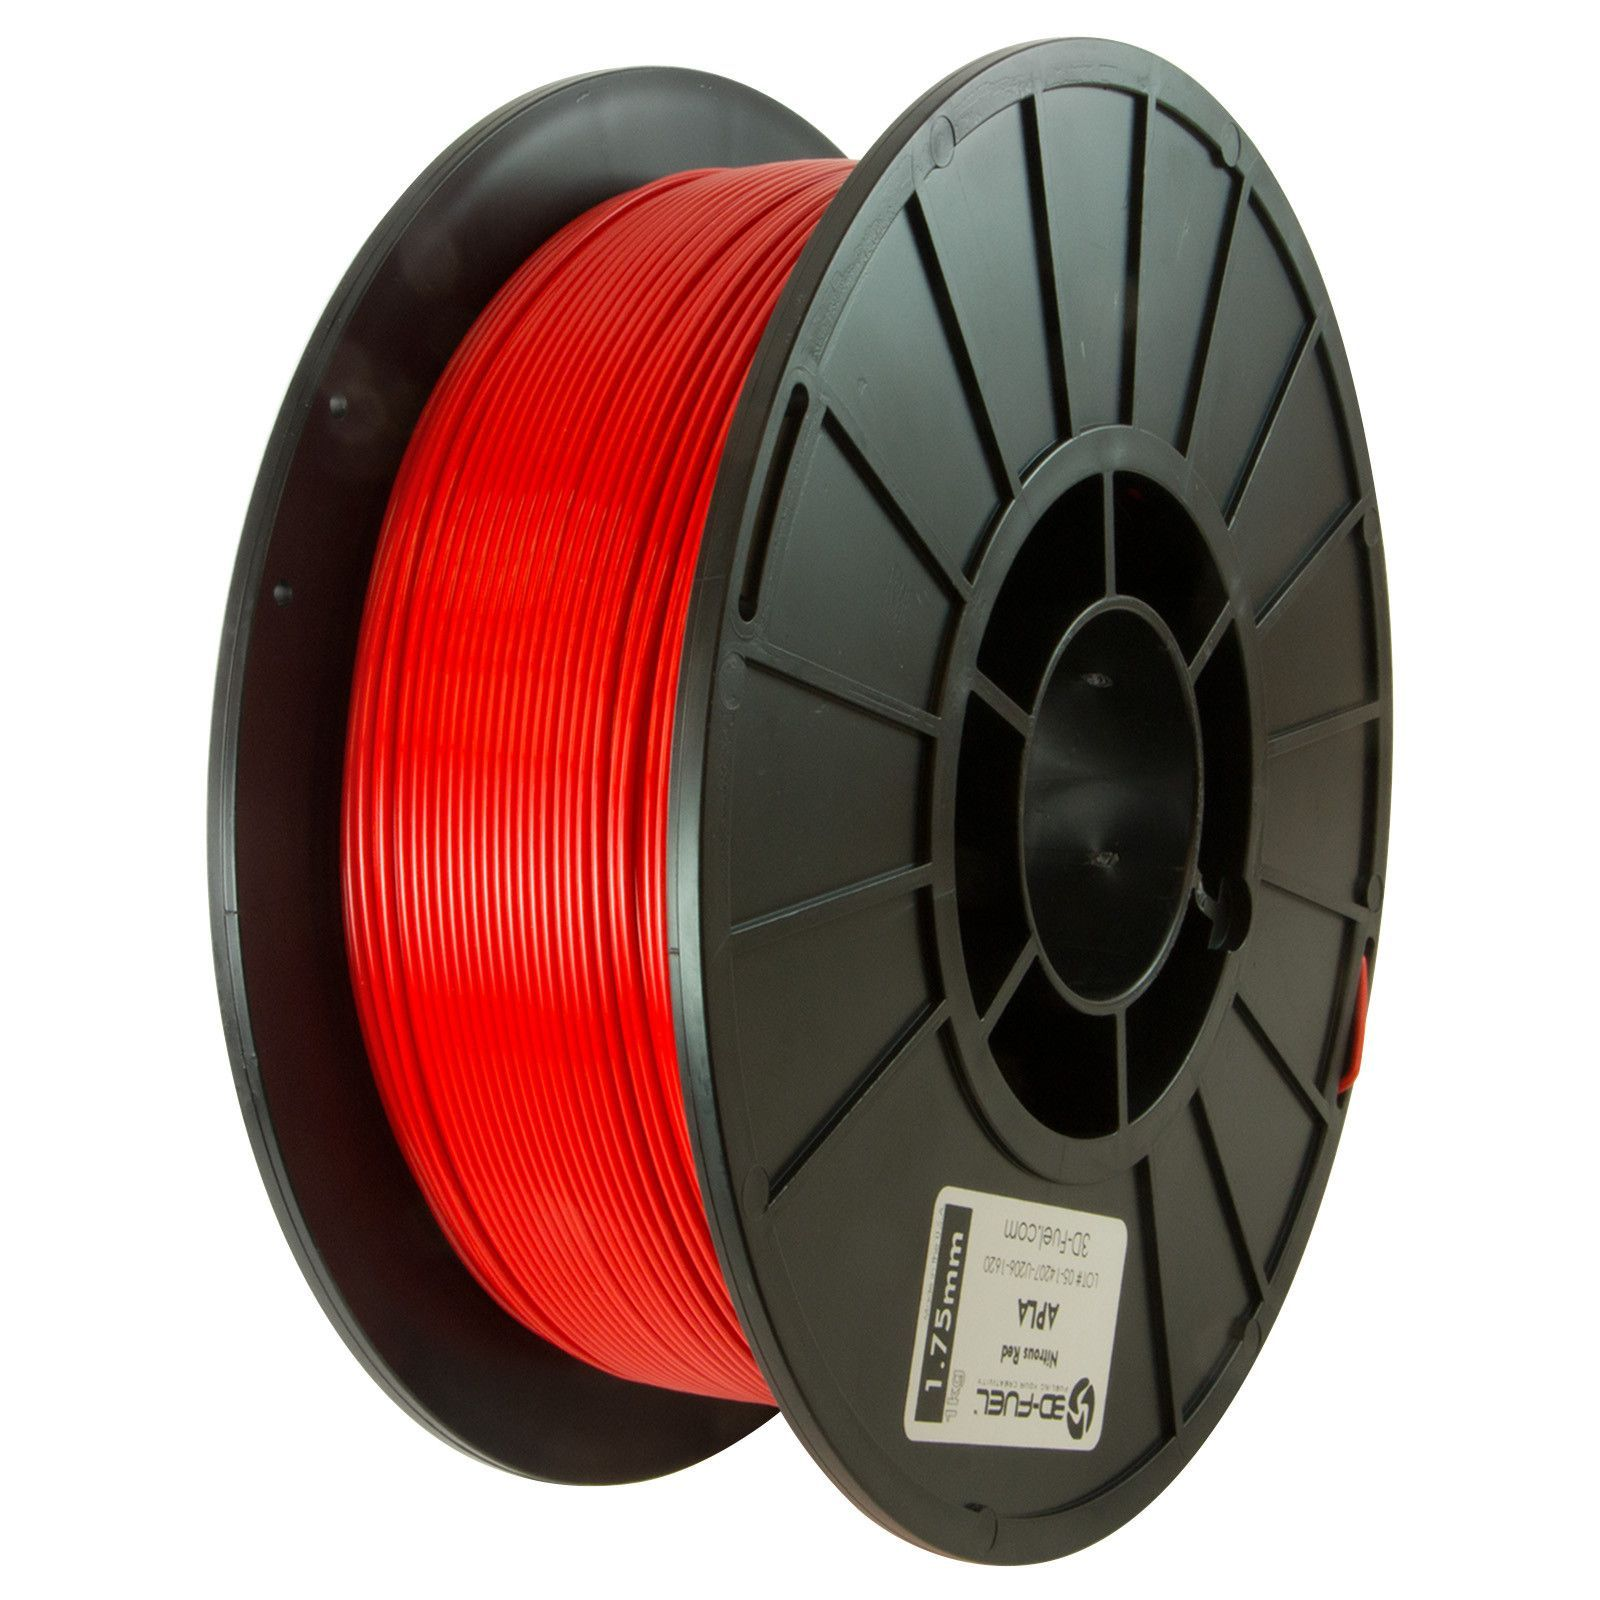 3DFuel Workday PLA (Advanced PLA) various colors